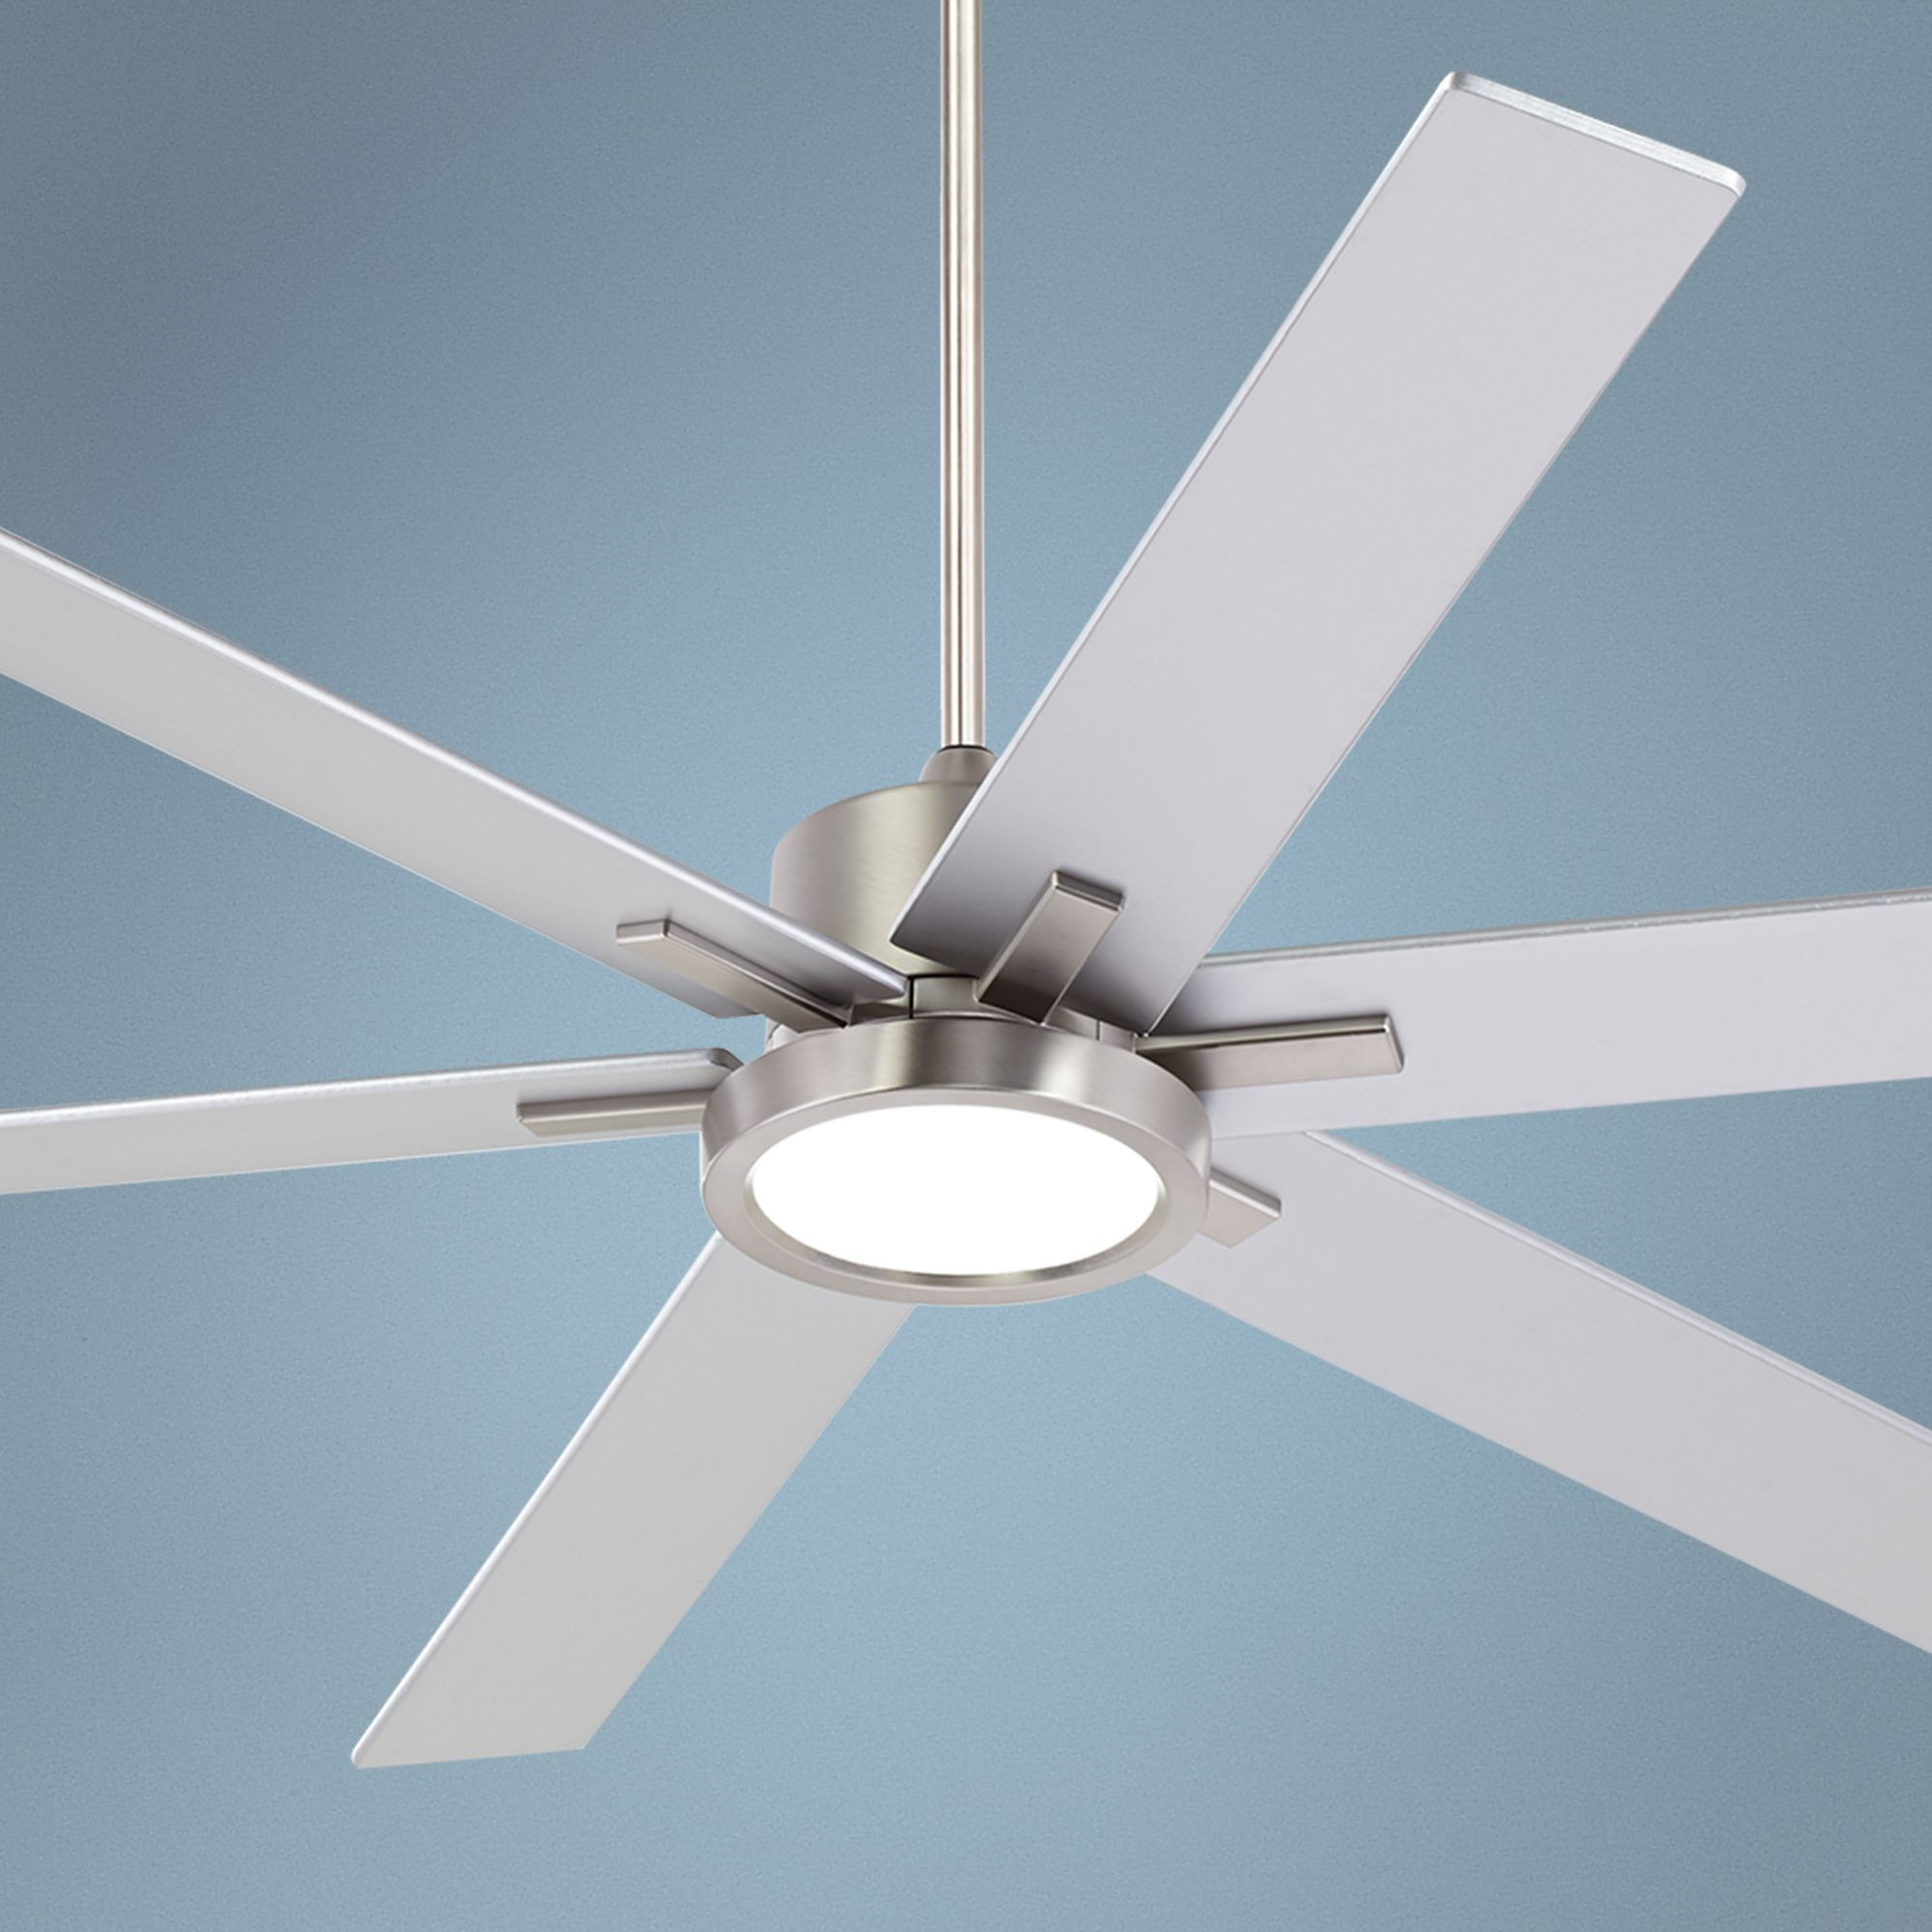 Images of contemporary ceiling fans 70 nwqvast